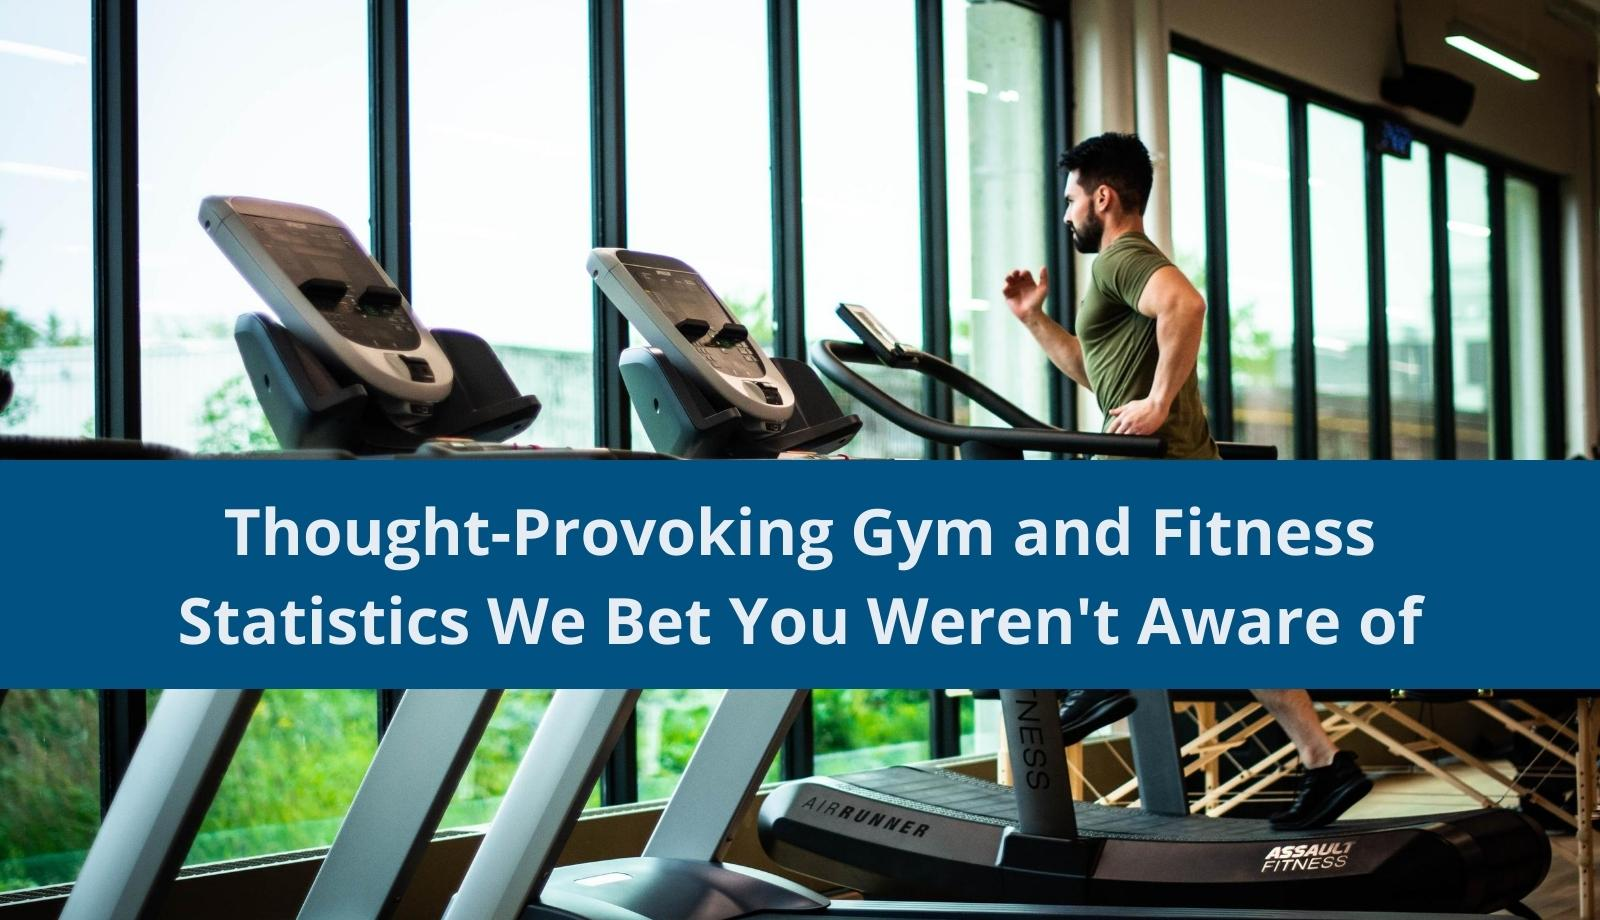 Thought-Provoking Gym and Fitness Statistics We Bet You Weren't Aware of [Infographic]